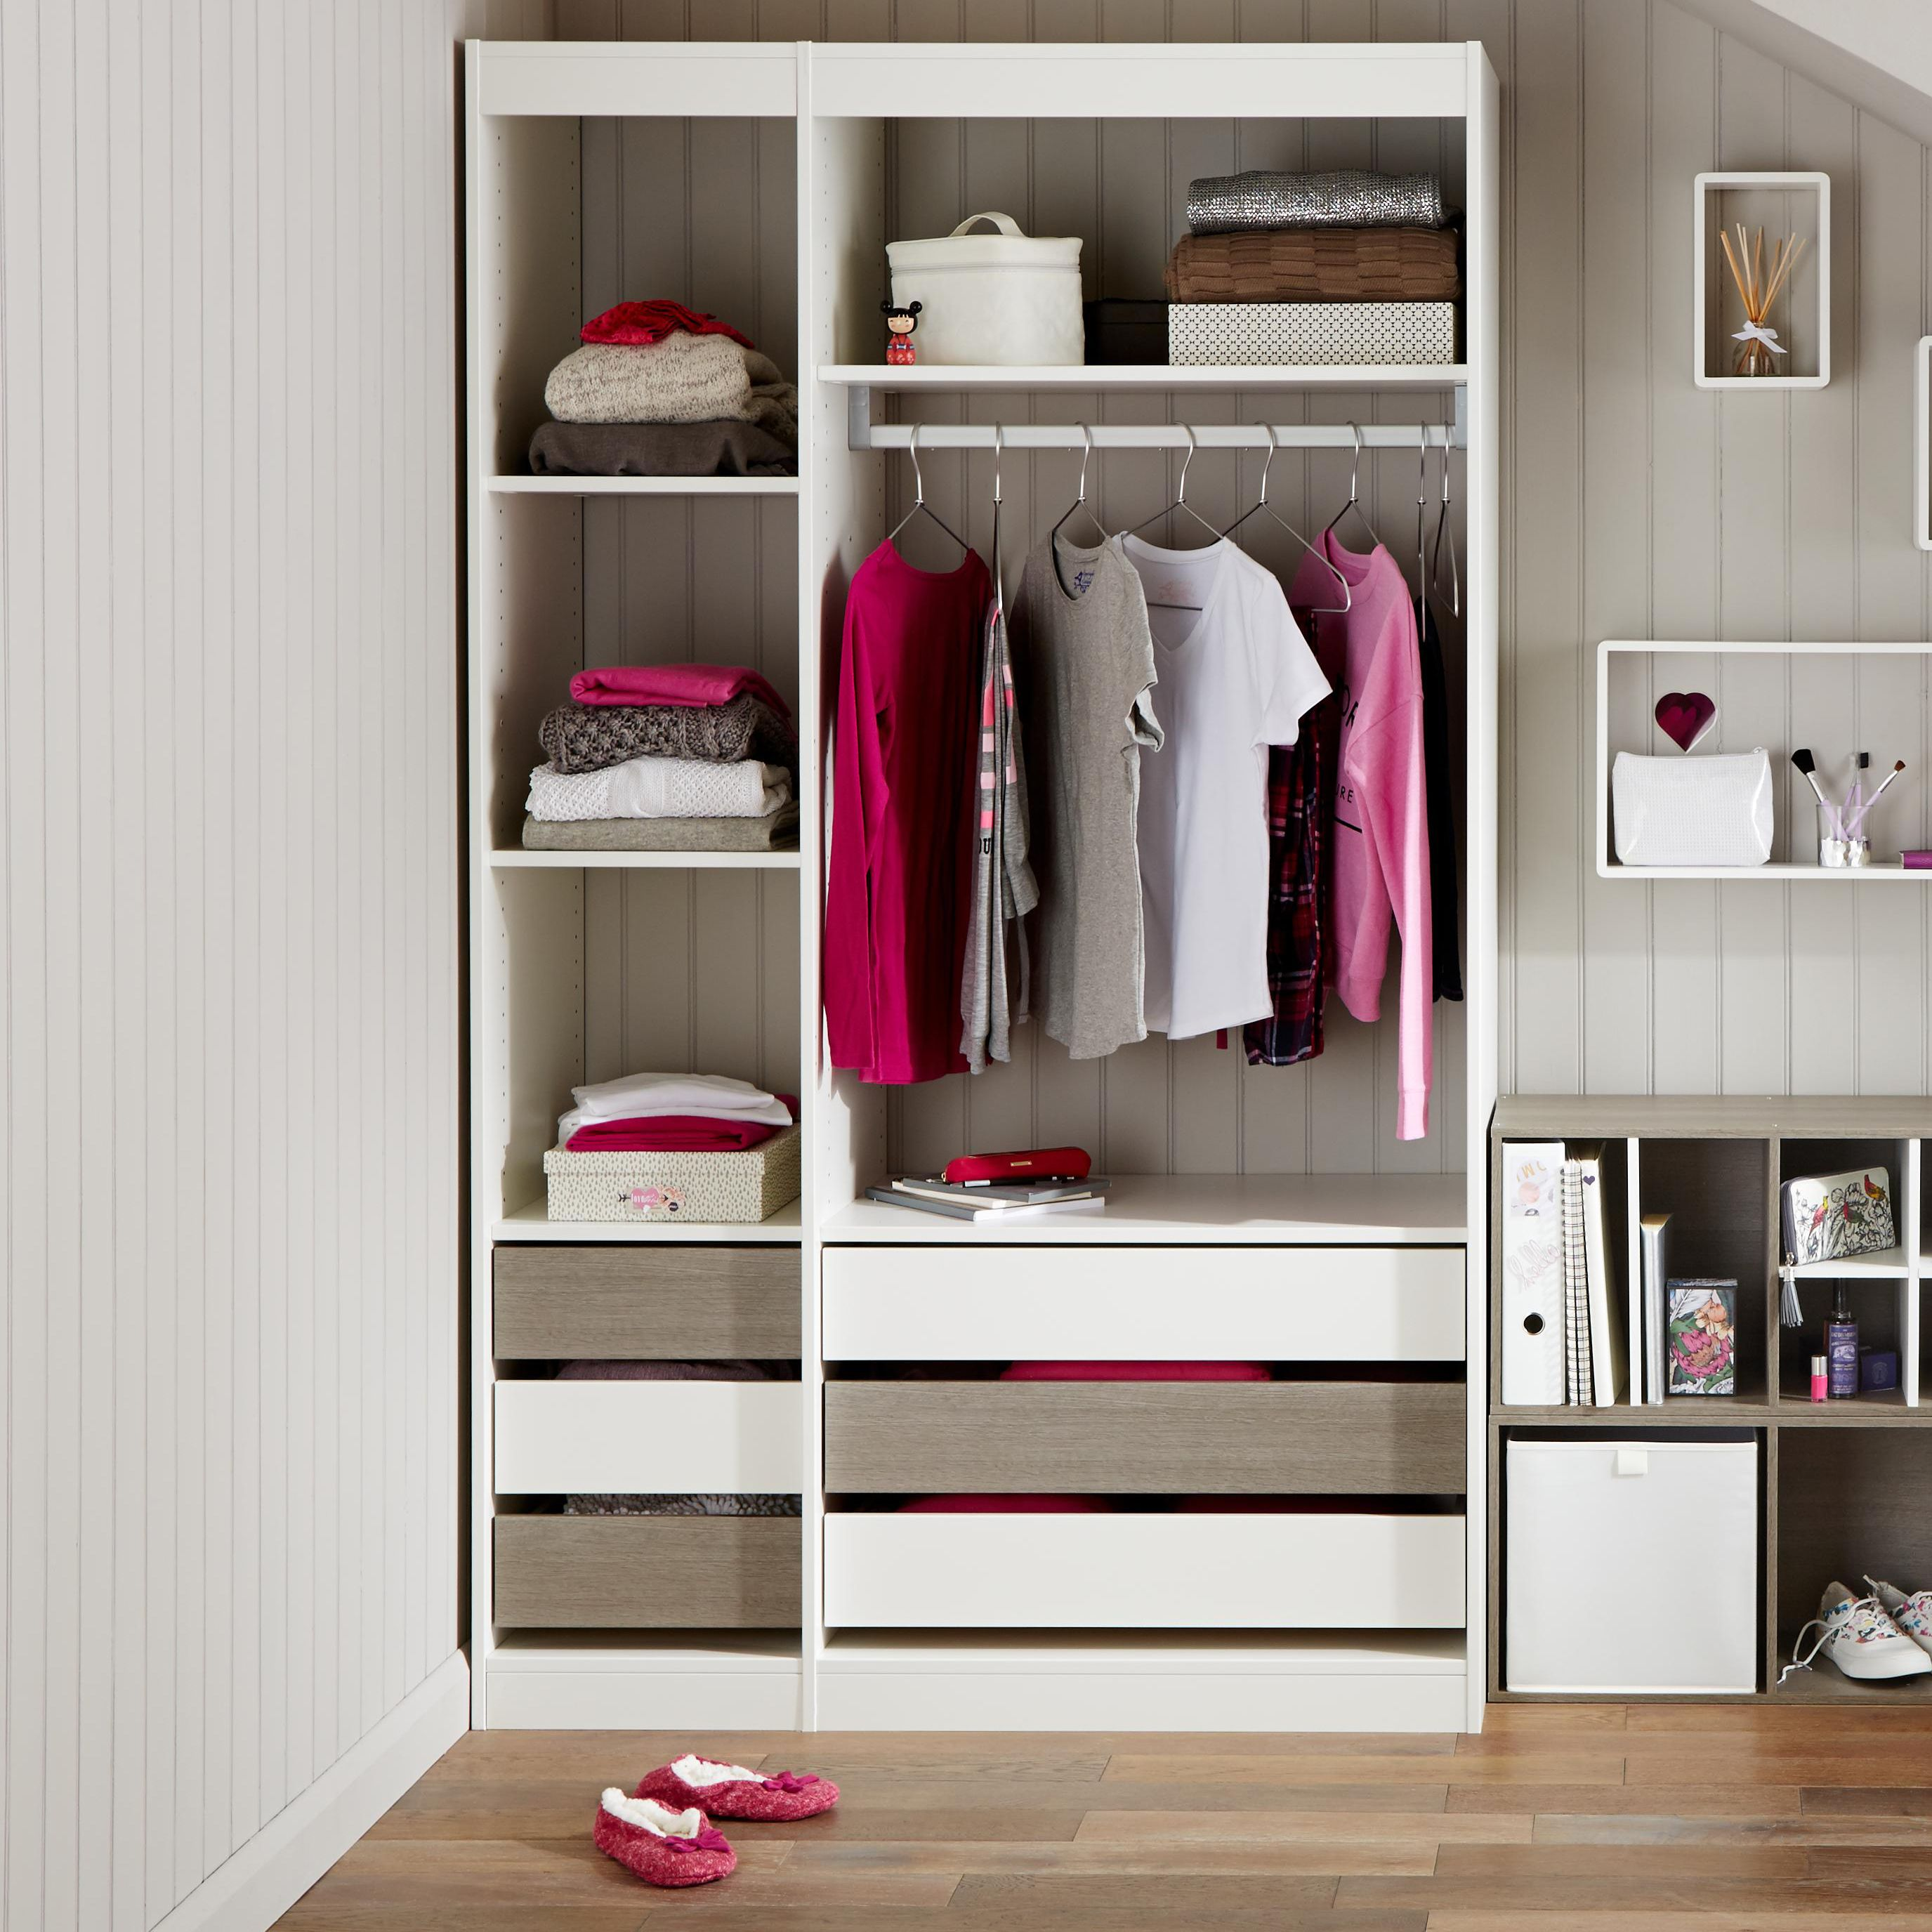 Form Perkin White & Grey Oak effect Wardrobe